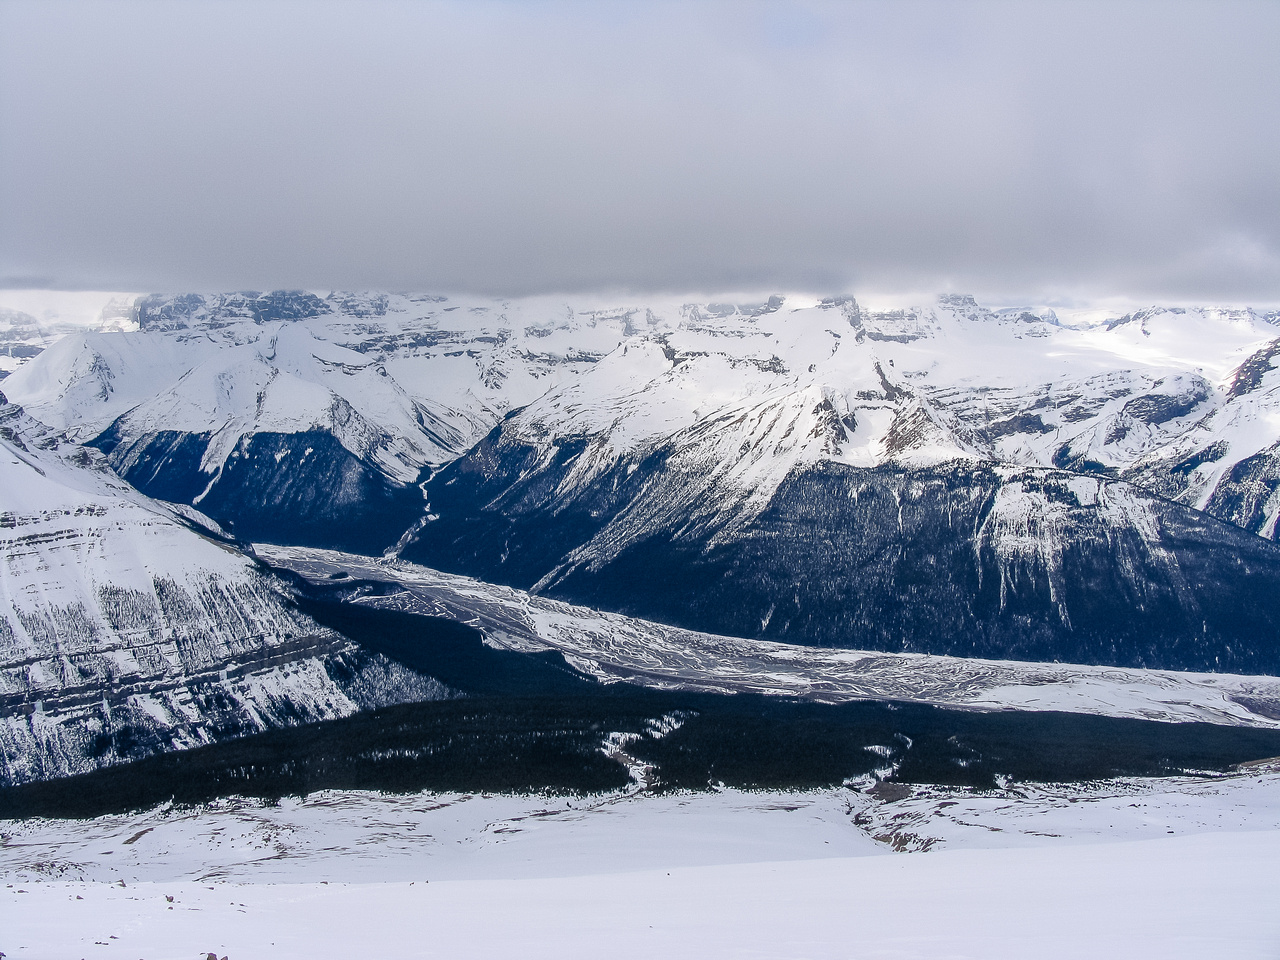 The northern end of the Columbia Icefield is hidden in clouds at left.